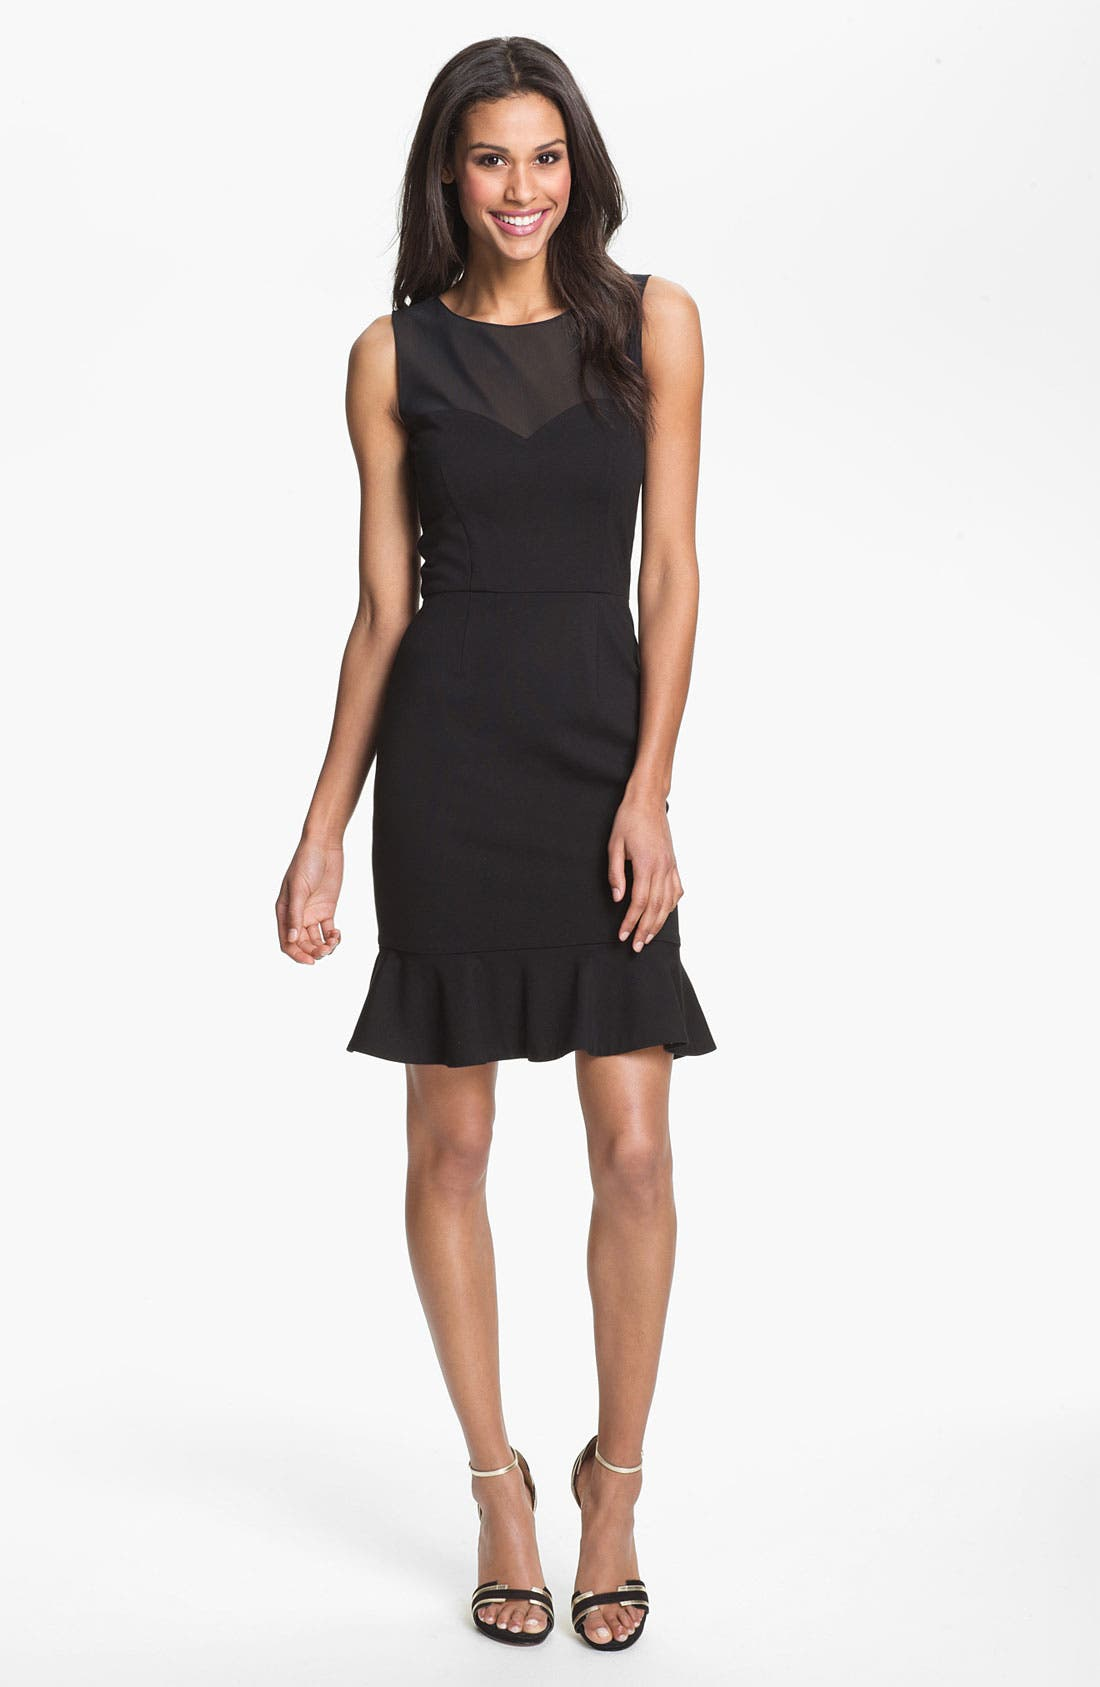 Main Image - ERIN erin fetherston Mesh Yoke Sheath Dress